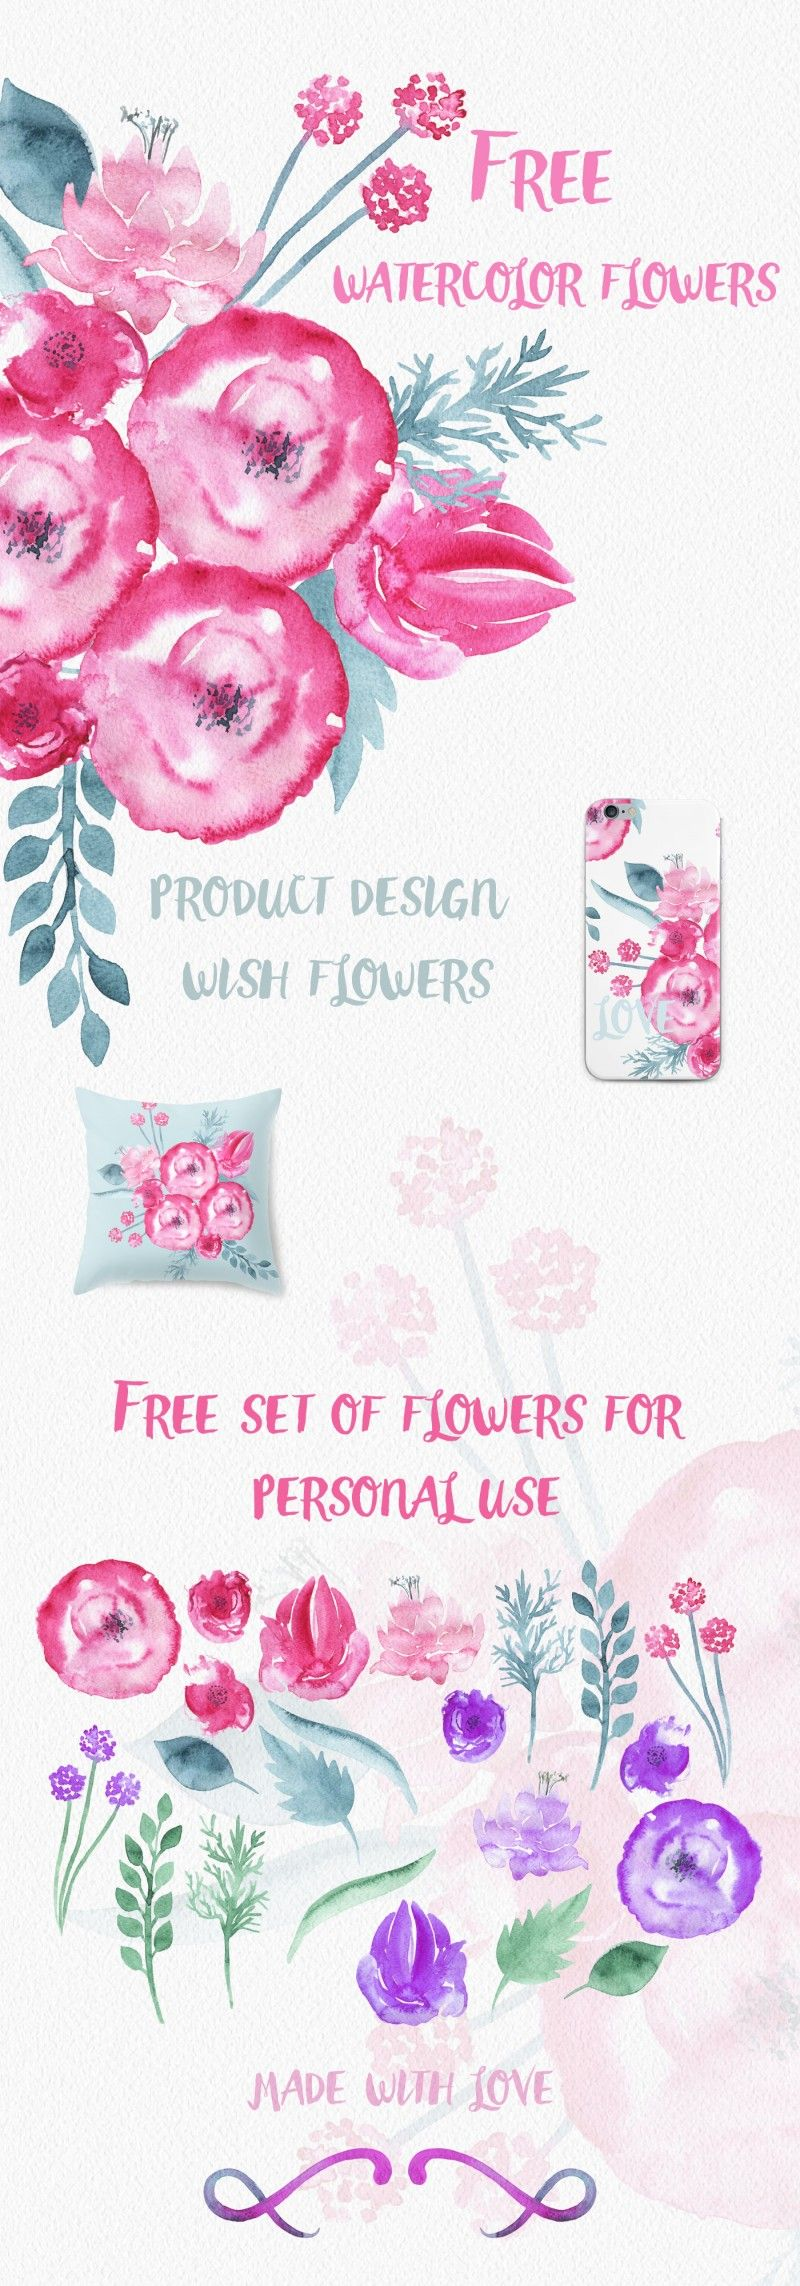 Free Watercolor Flower Set The Hungry Jpeg Free Watercolor Flowers Watercolor Flowers Floral Watercolor